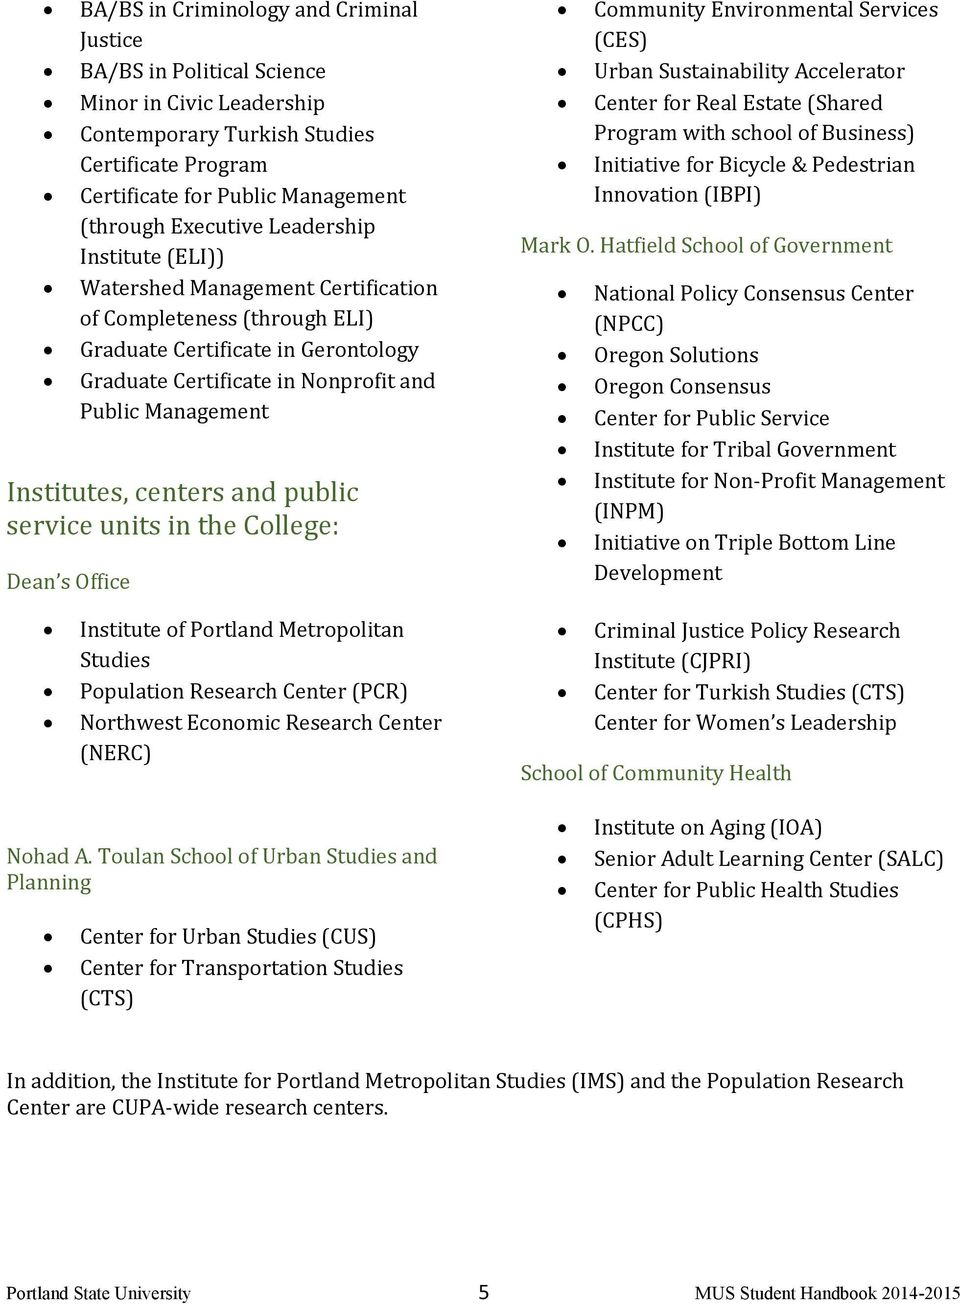 centers and public service units in the College: Dean s Office Community Environmental Services (CES) Urban Sustainability Accelerator Center for Real Estate (Shared Program with school of Business)